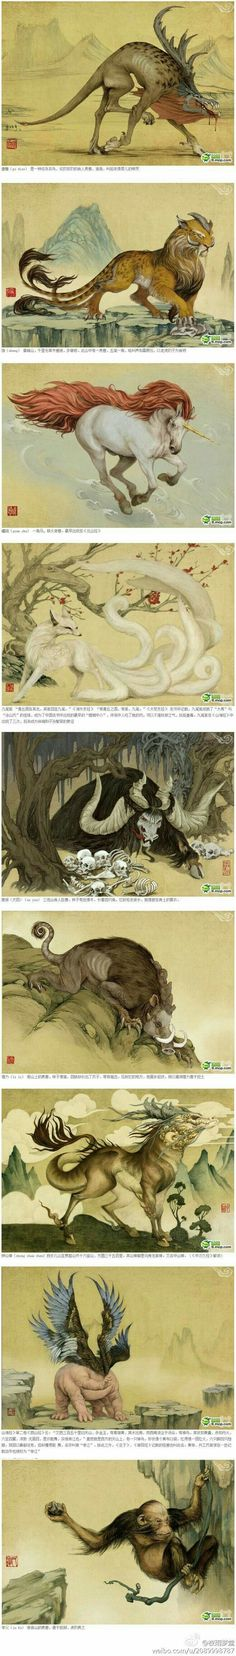 Drawings of various fantasy creatures. Mythical Creatures Art, Mythological Creatures, Magical Creatures, Monster Design, Monster Art, Creature Concept Art, Creature Design, Fantasy Beasts, Fantasy Art